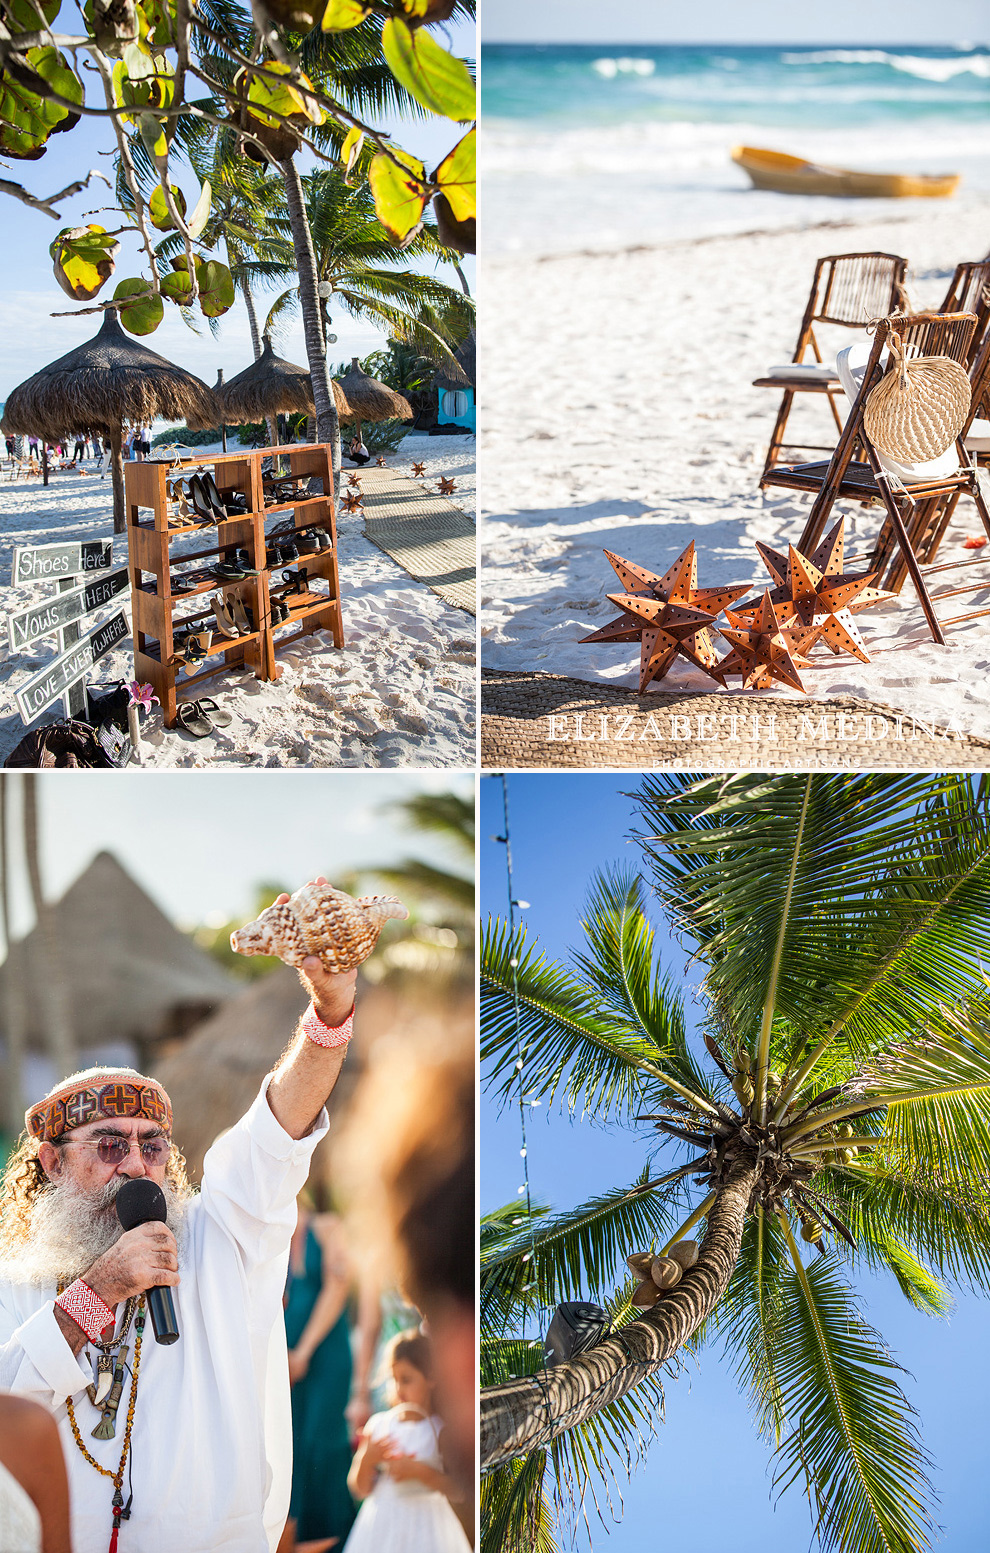 elizabeth medina photography tulum wedding photographer_50 Mayan Ceremony, Tulum, Mexico  12 13 14